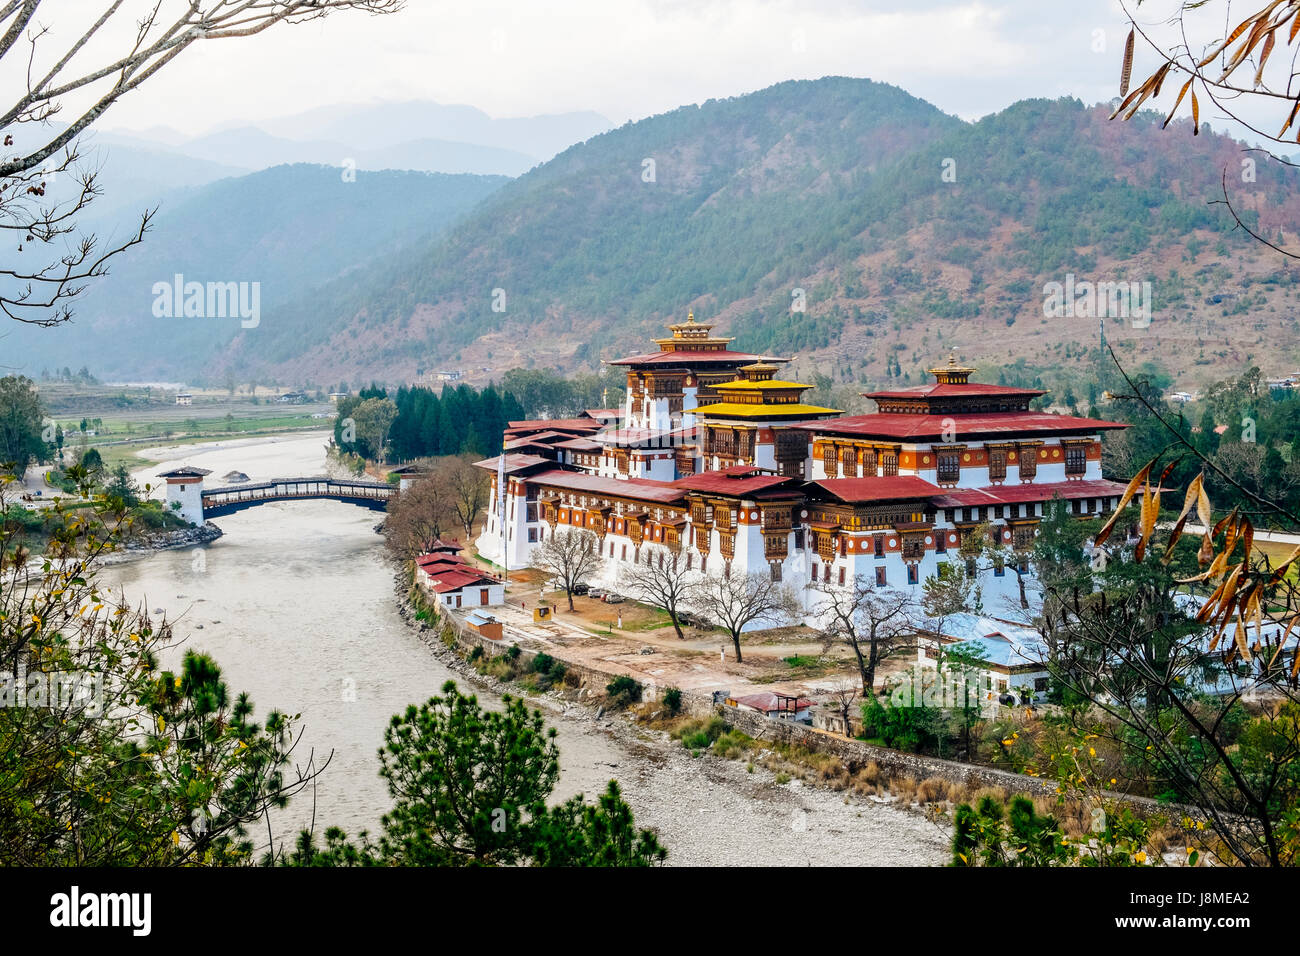 Punakha Dzong or Pungtang Dechen Photrang Dzong means the palace of great happiness located in Punakha district - Stock Image